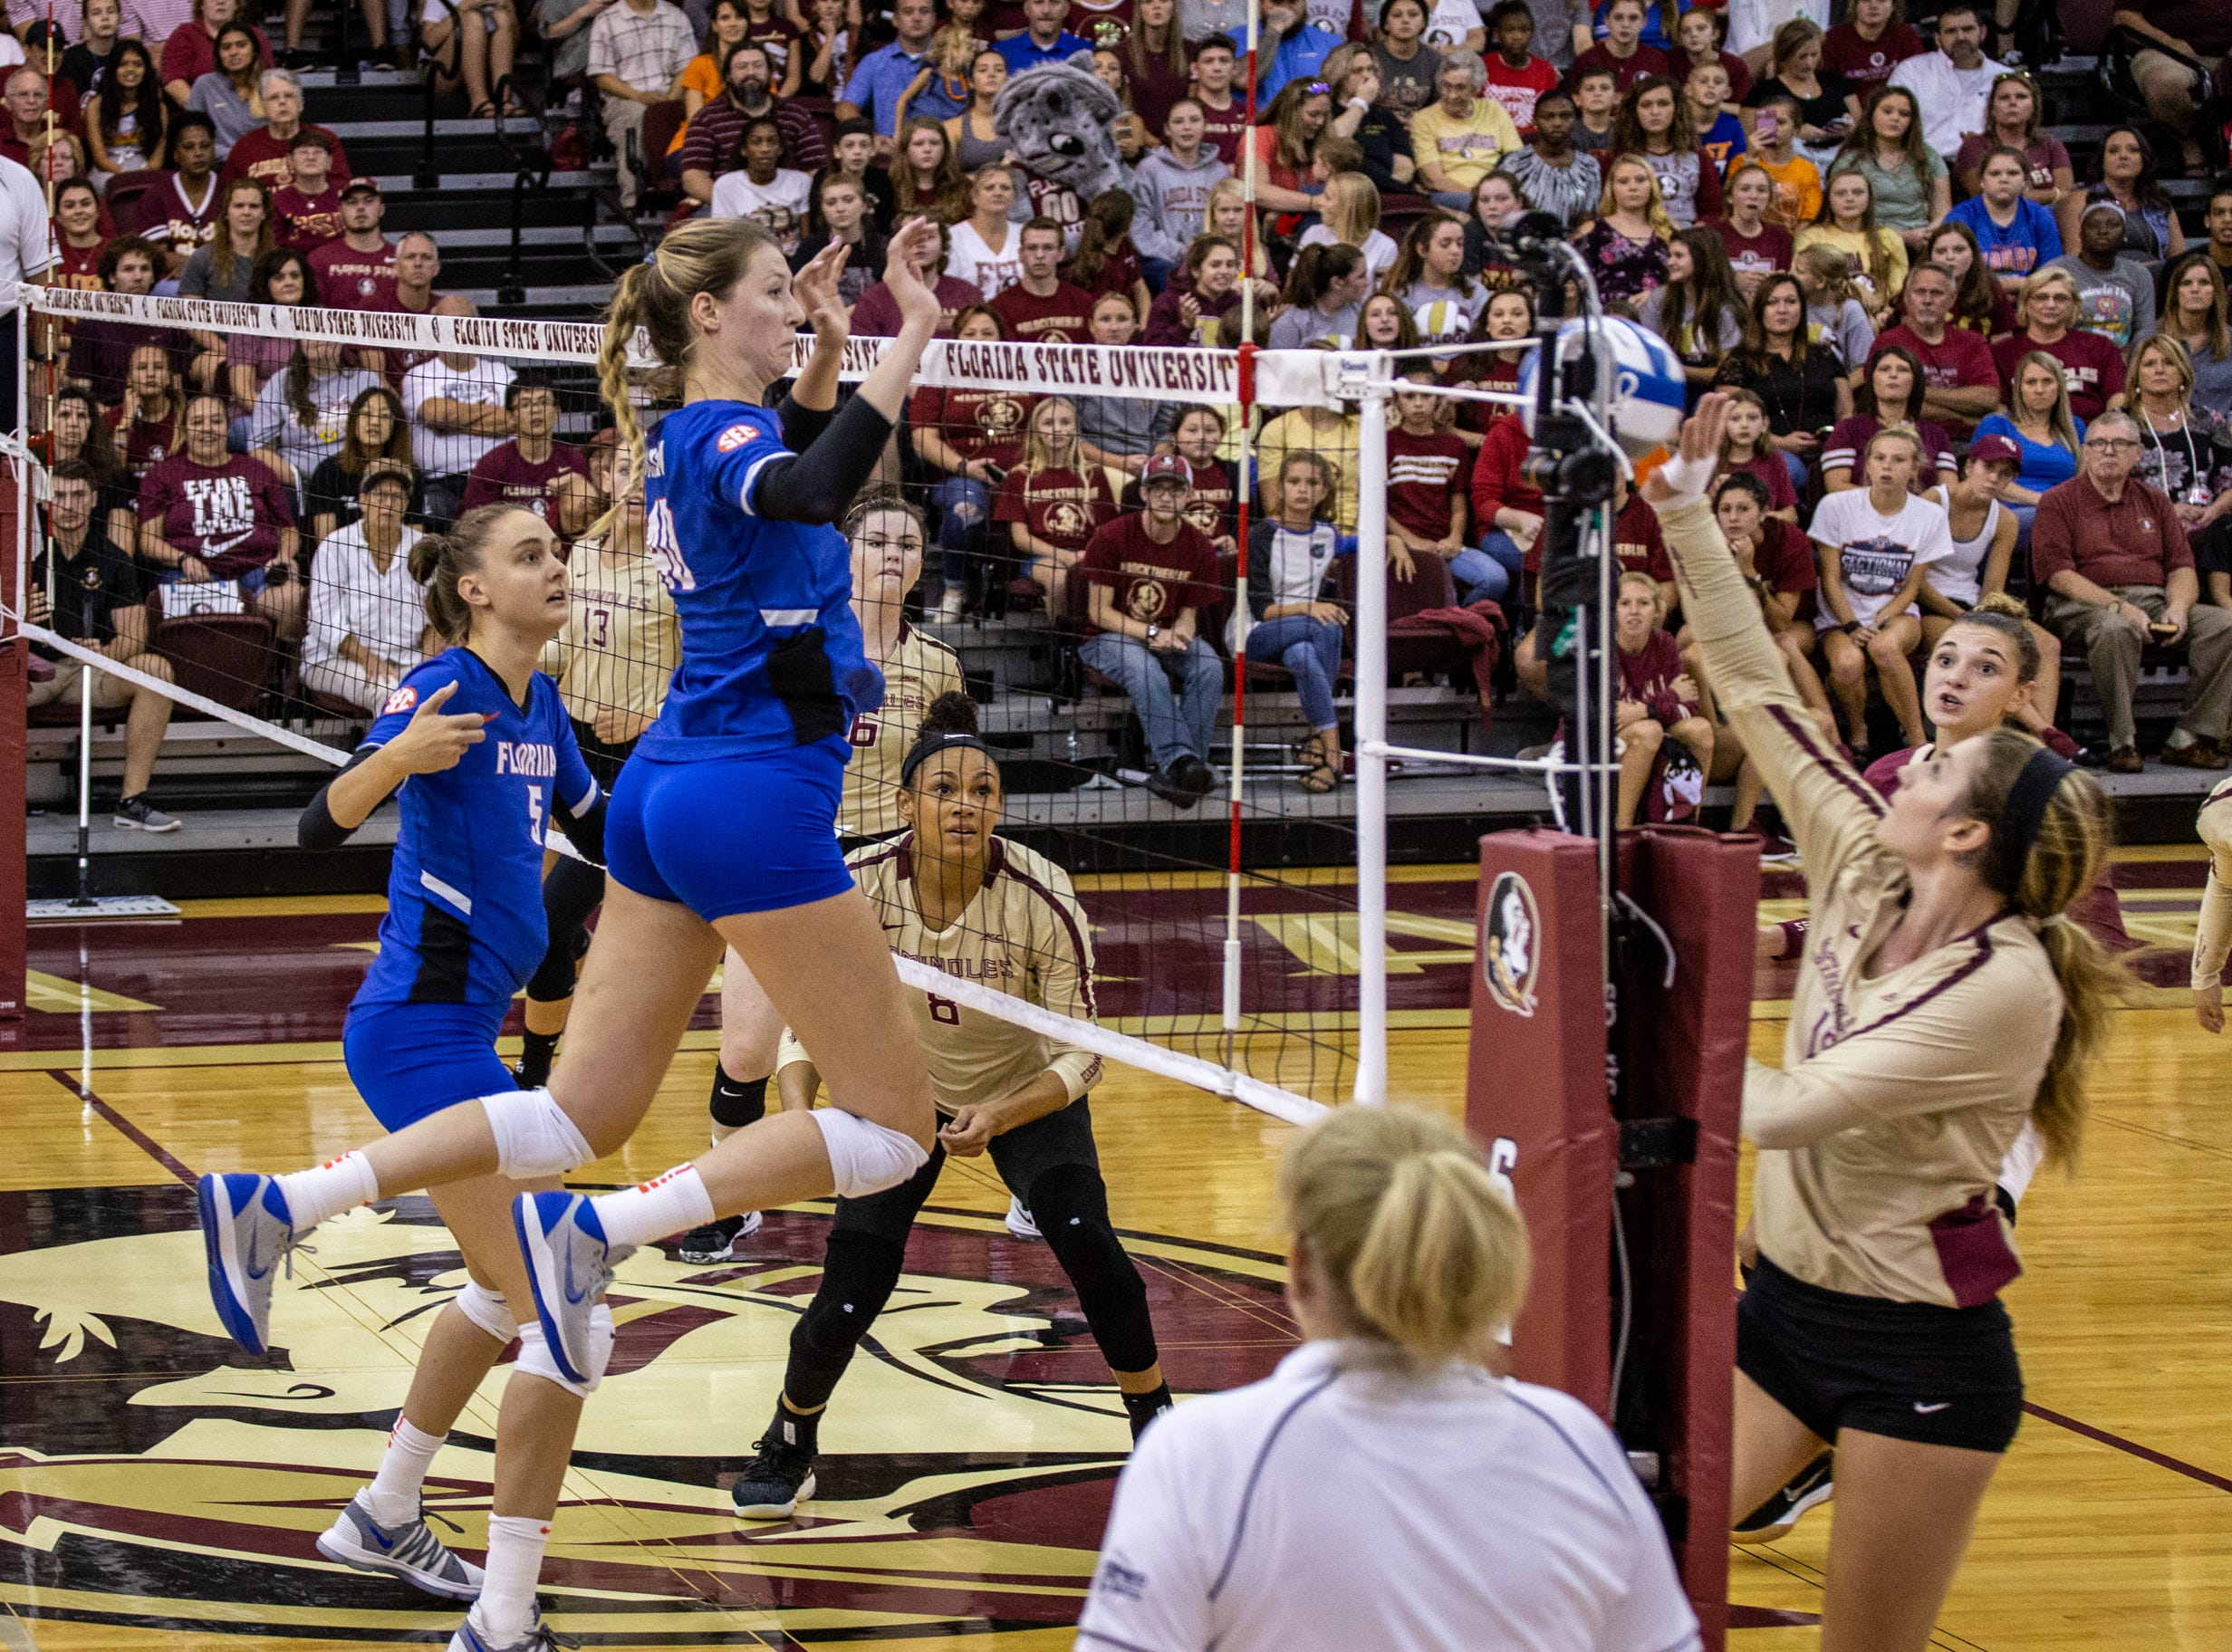 UF's Holly Carlton (40) jumps to block FSU's Christina Ambrose (10) as she tips the ball over the net during the first set against Florida held at Tully Gymnasium on Wednesday.